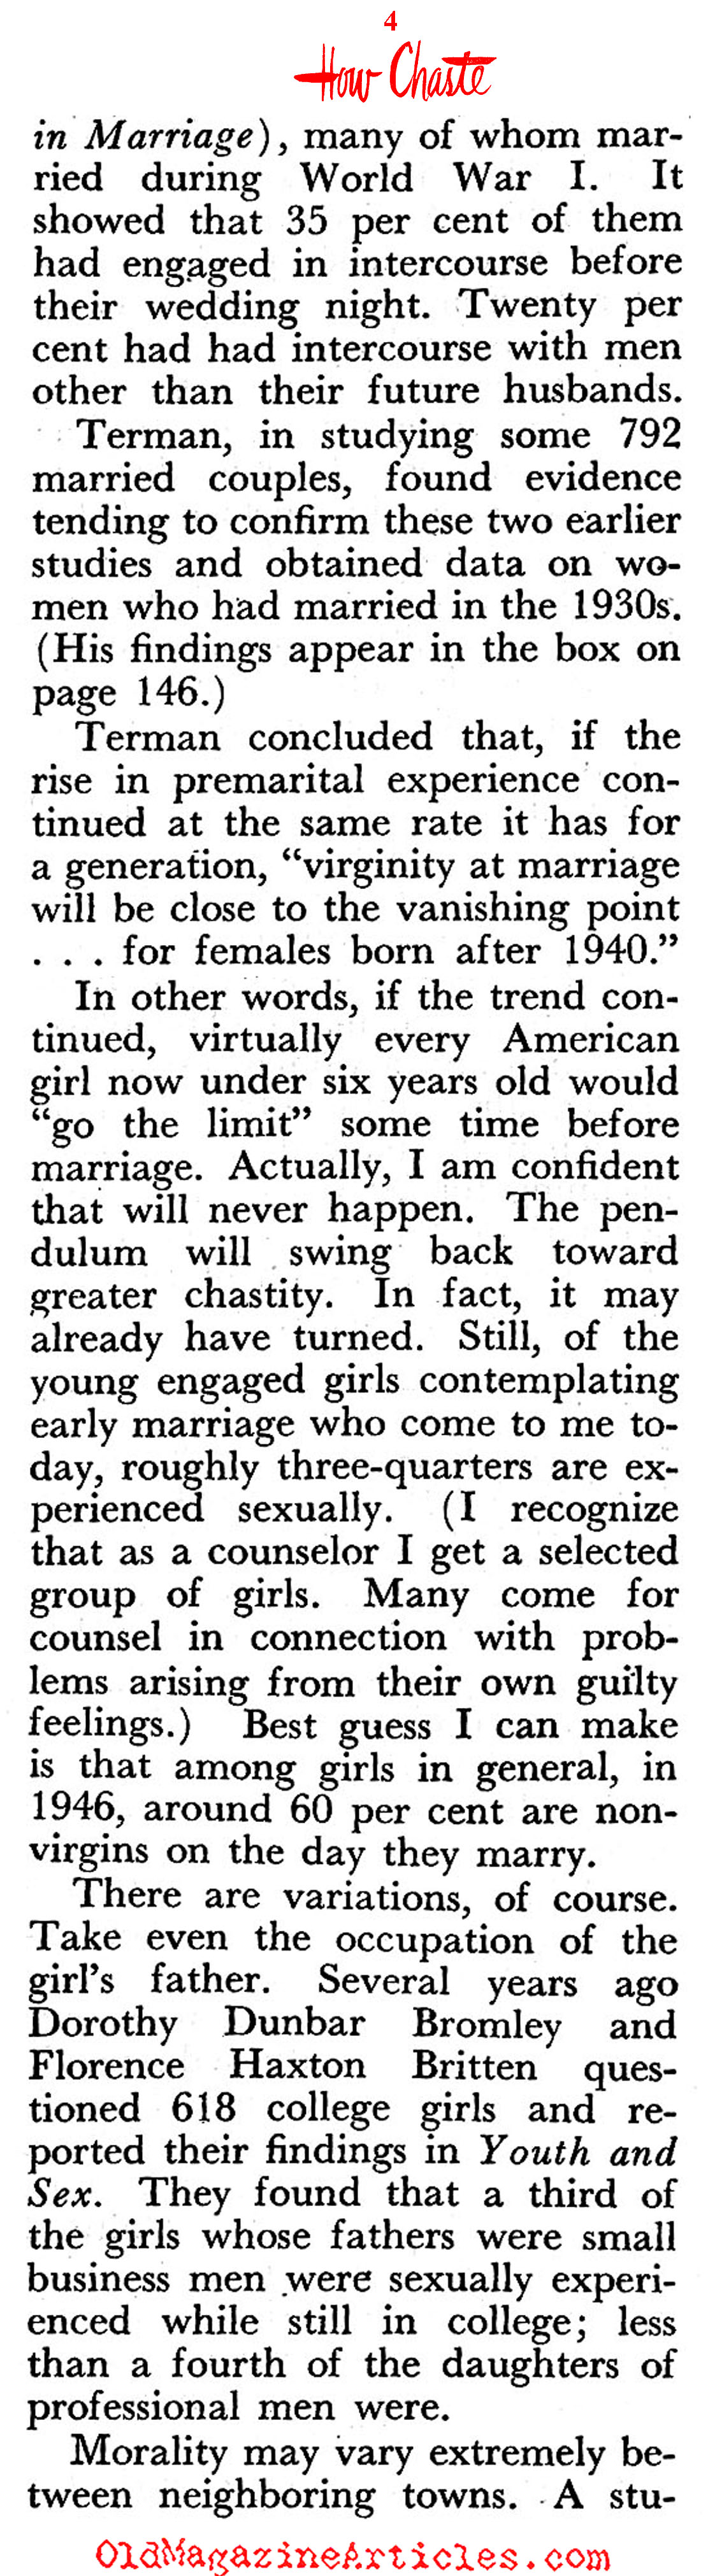 The Sex Drive of the American Women (Pageant Magazine, 1946)